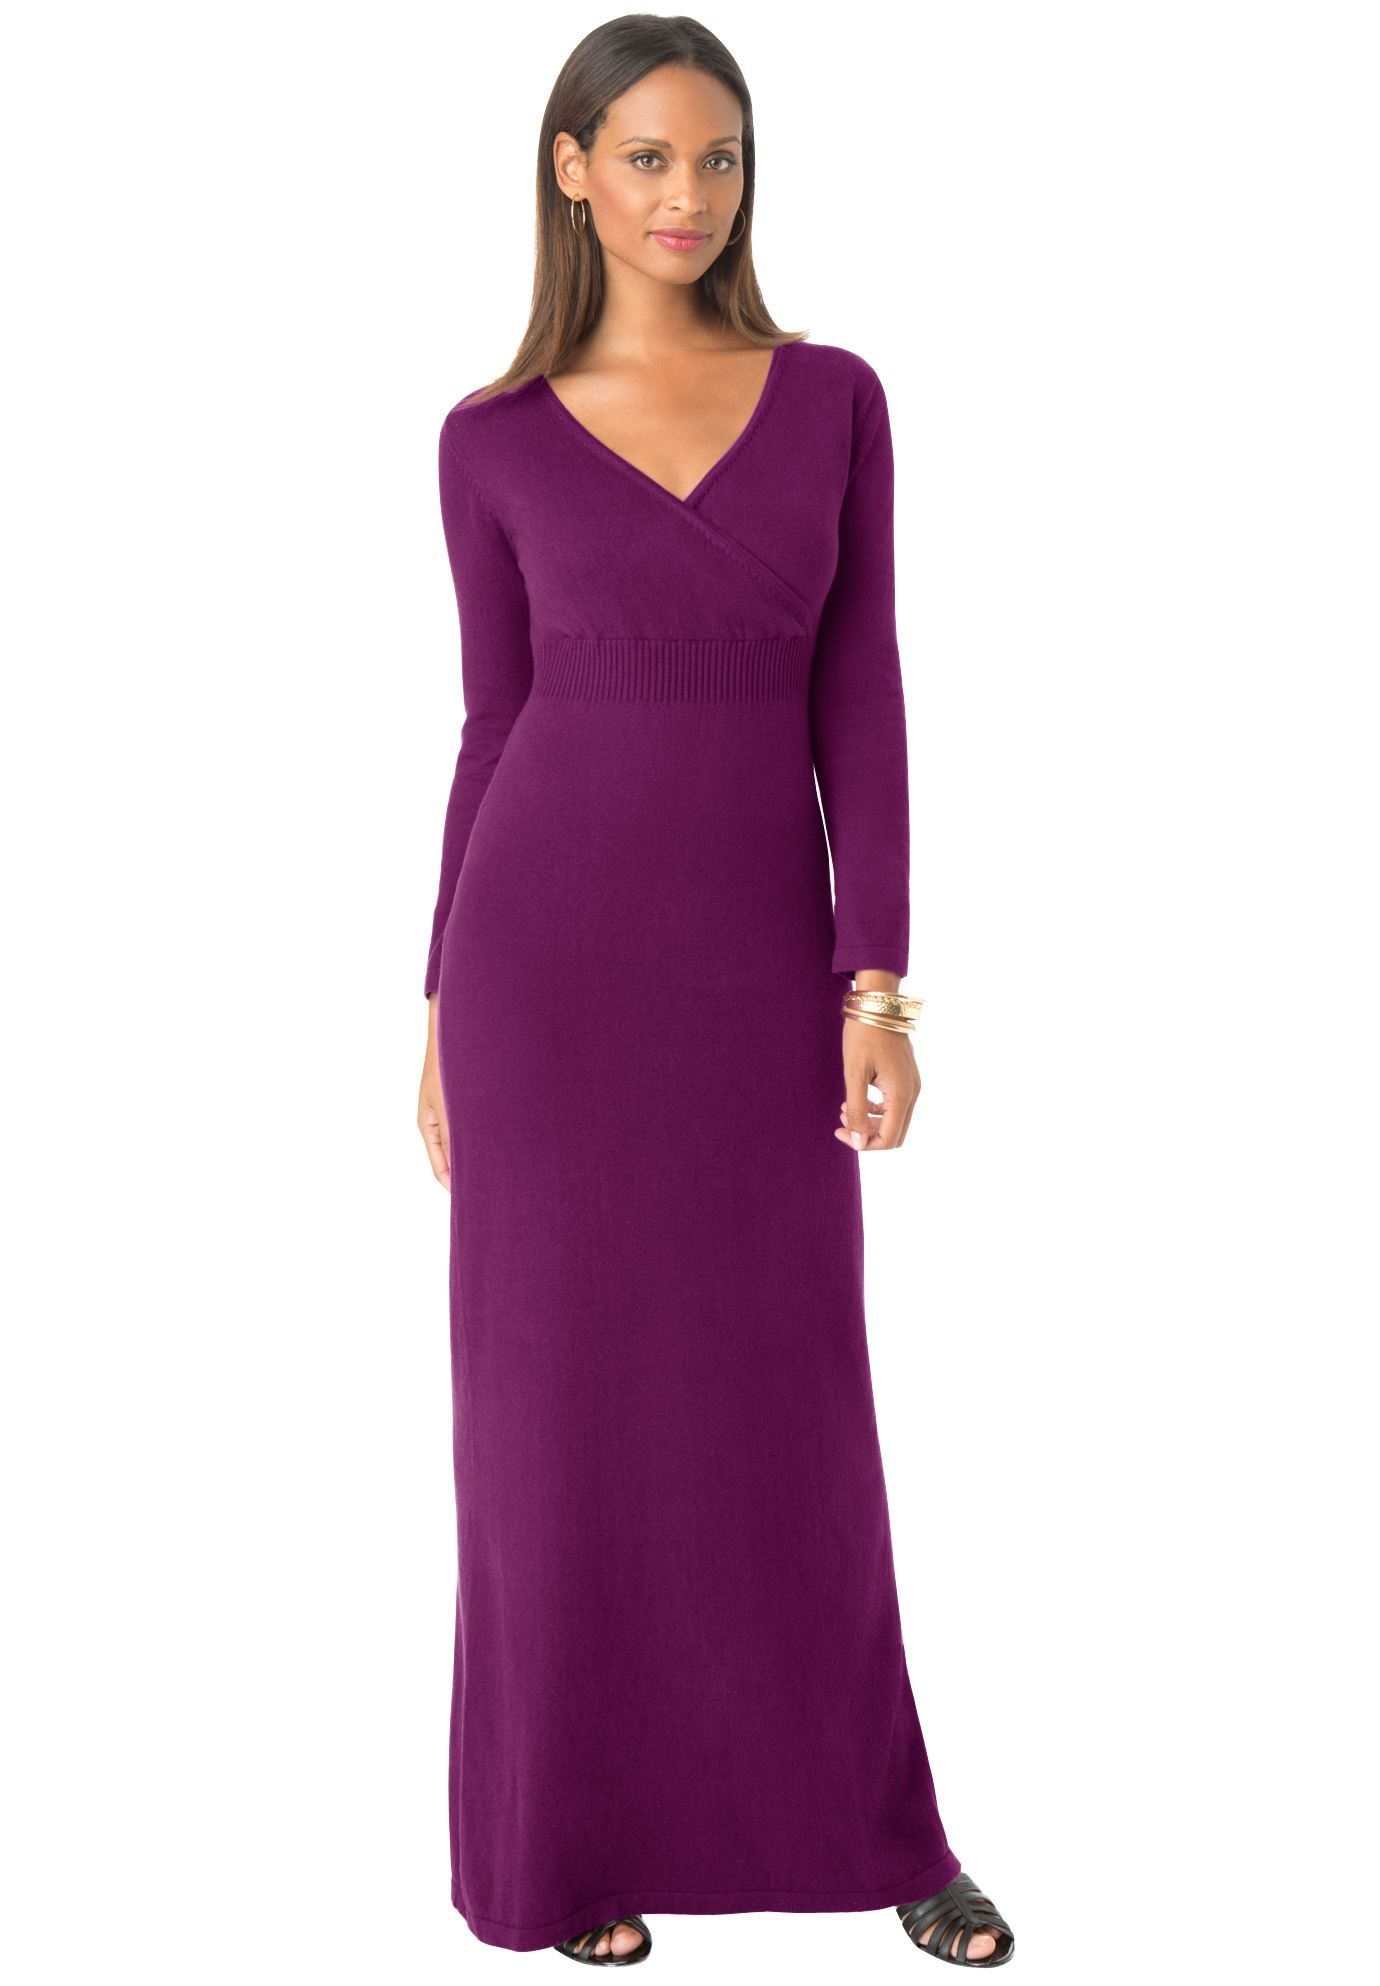 Maxi Sweater Dress Plus Size Maxi Dresses Jessica London